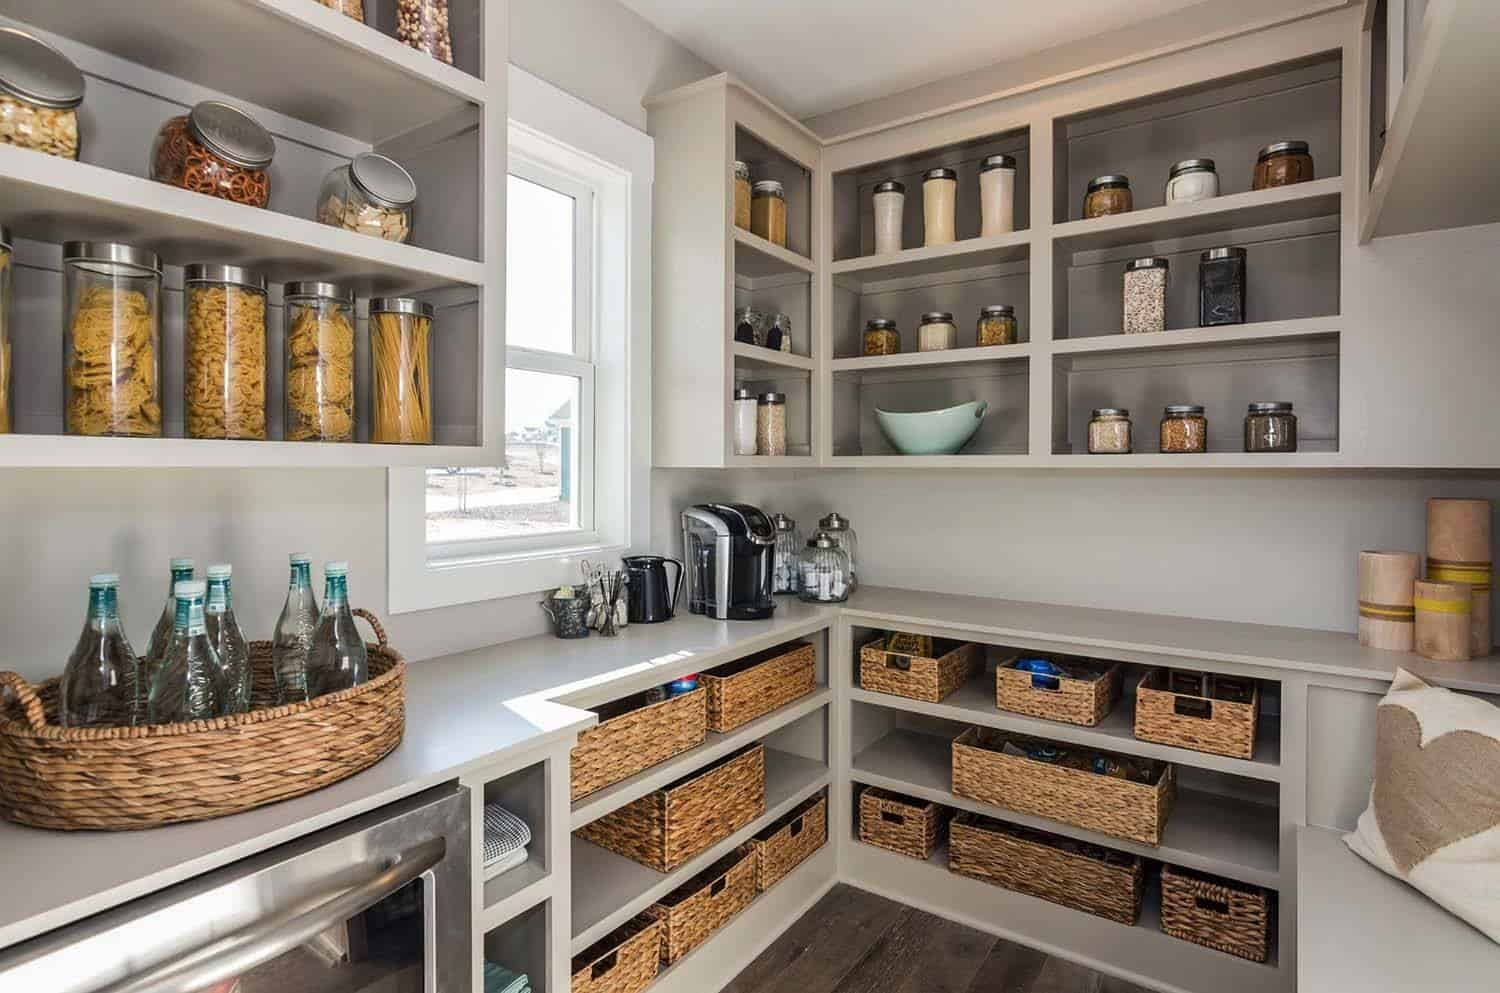 kitchen design pantry ideas 35 clever ideas to help organize your kitchen pantry 688